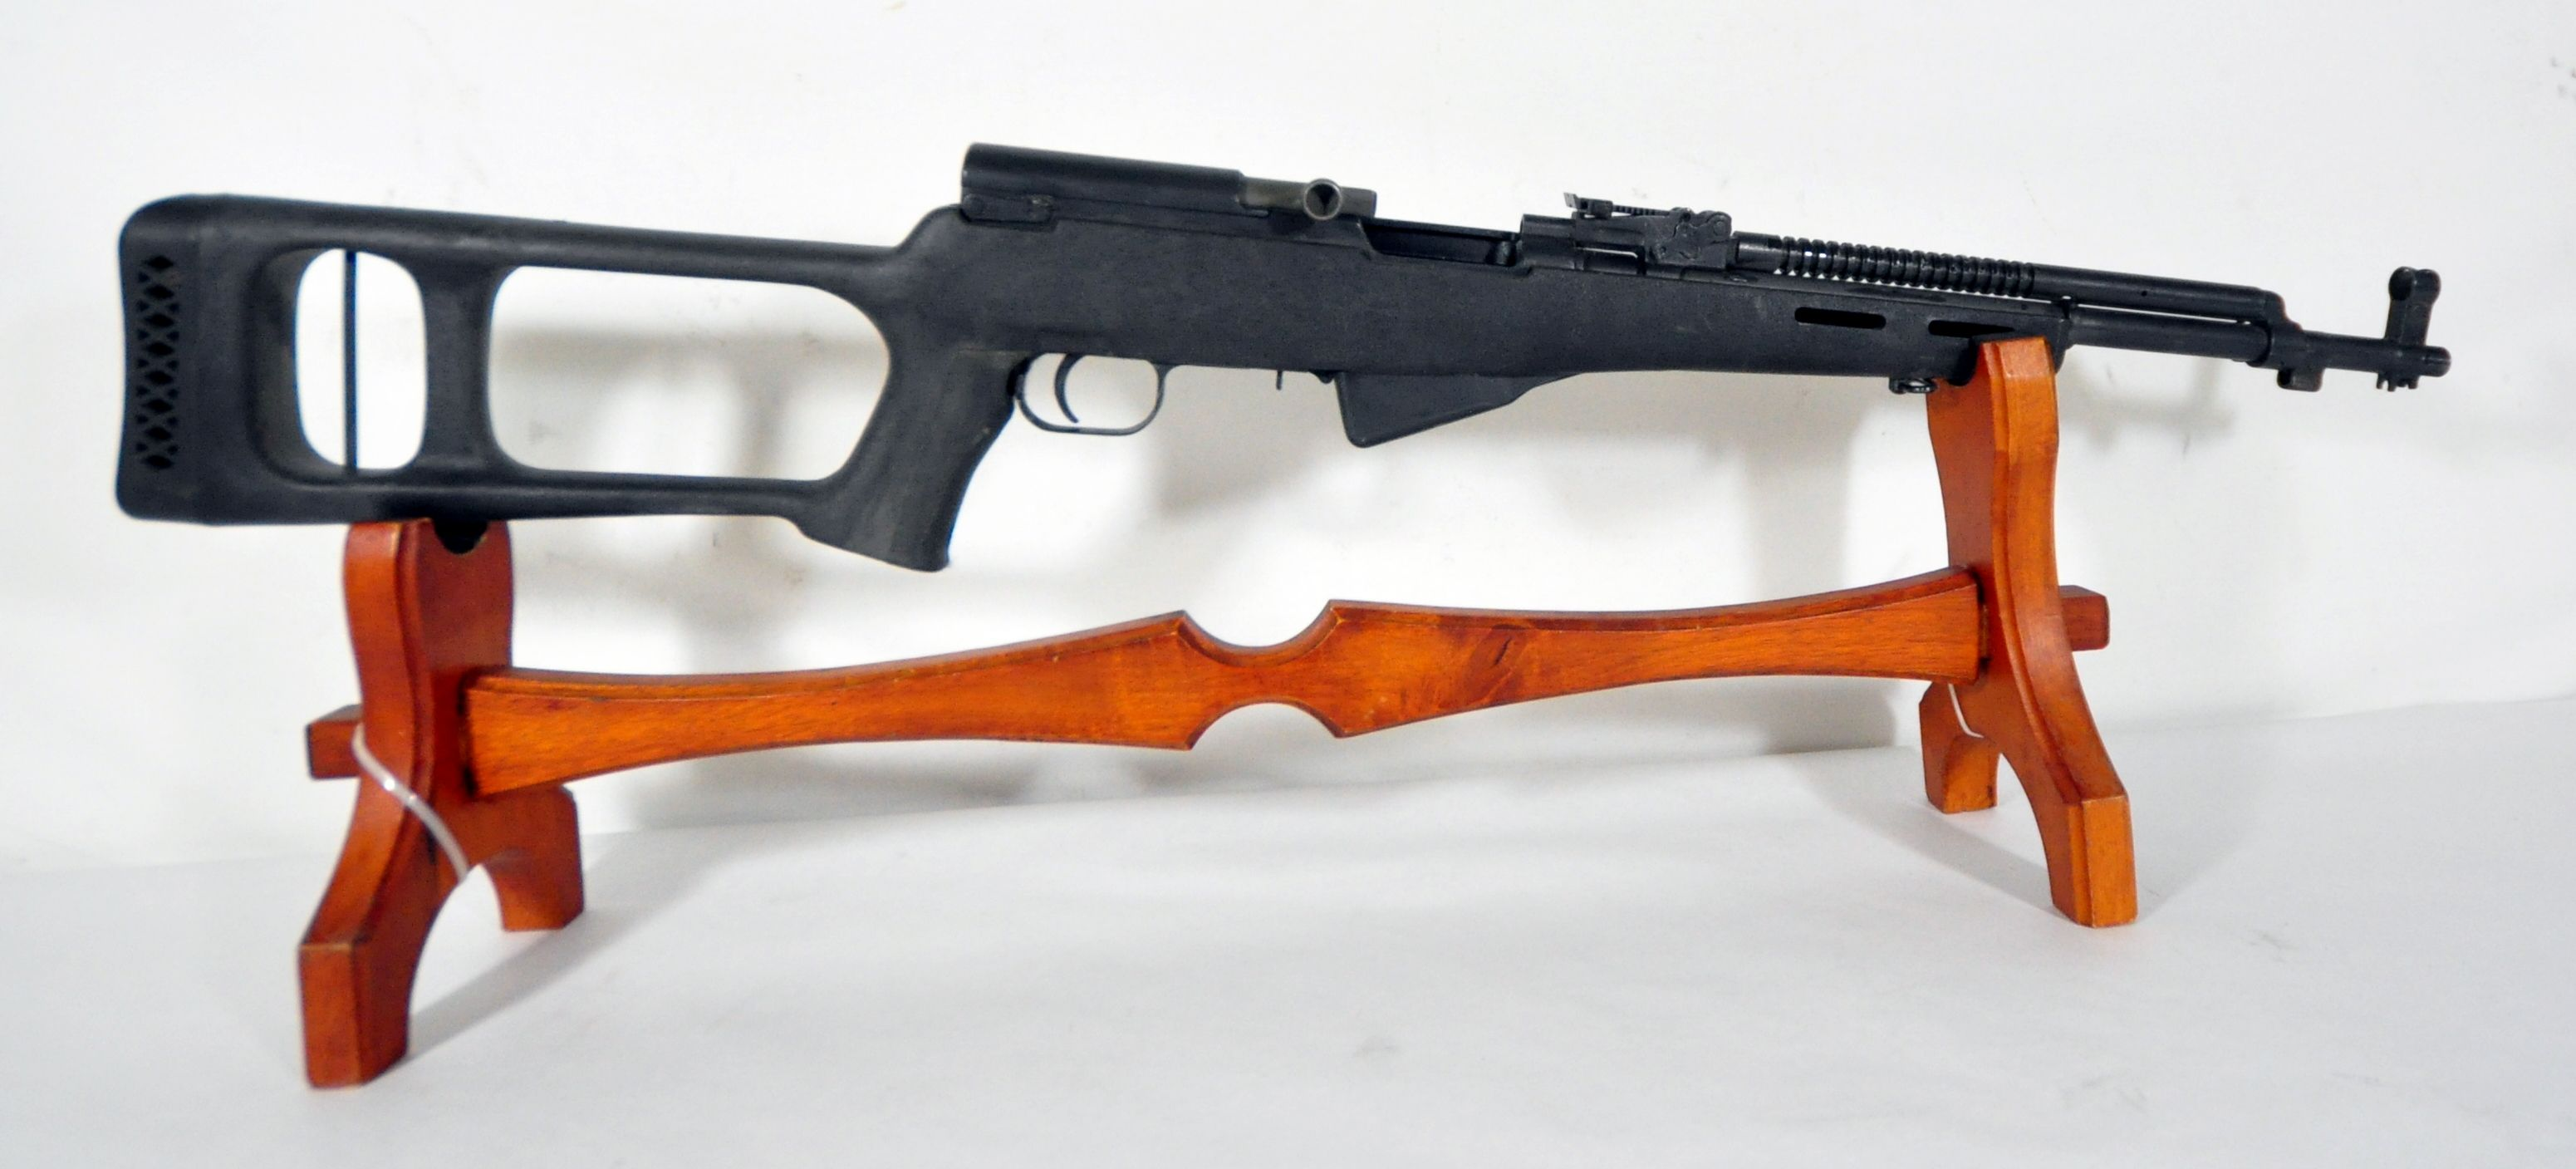 Norinco SKS 7 62x39 with Synthetic Stock 16 5